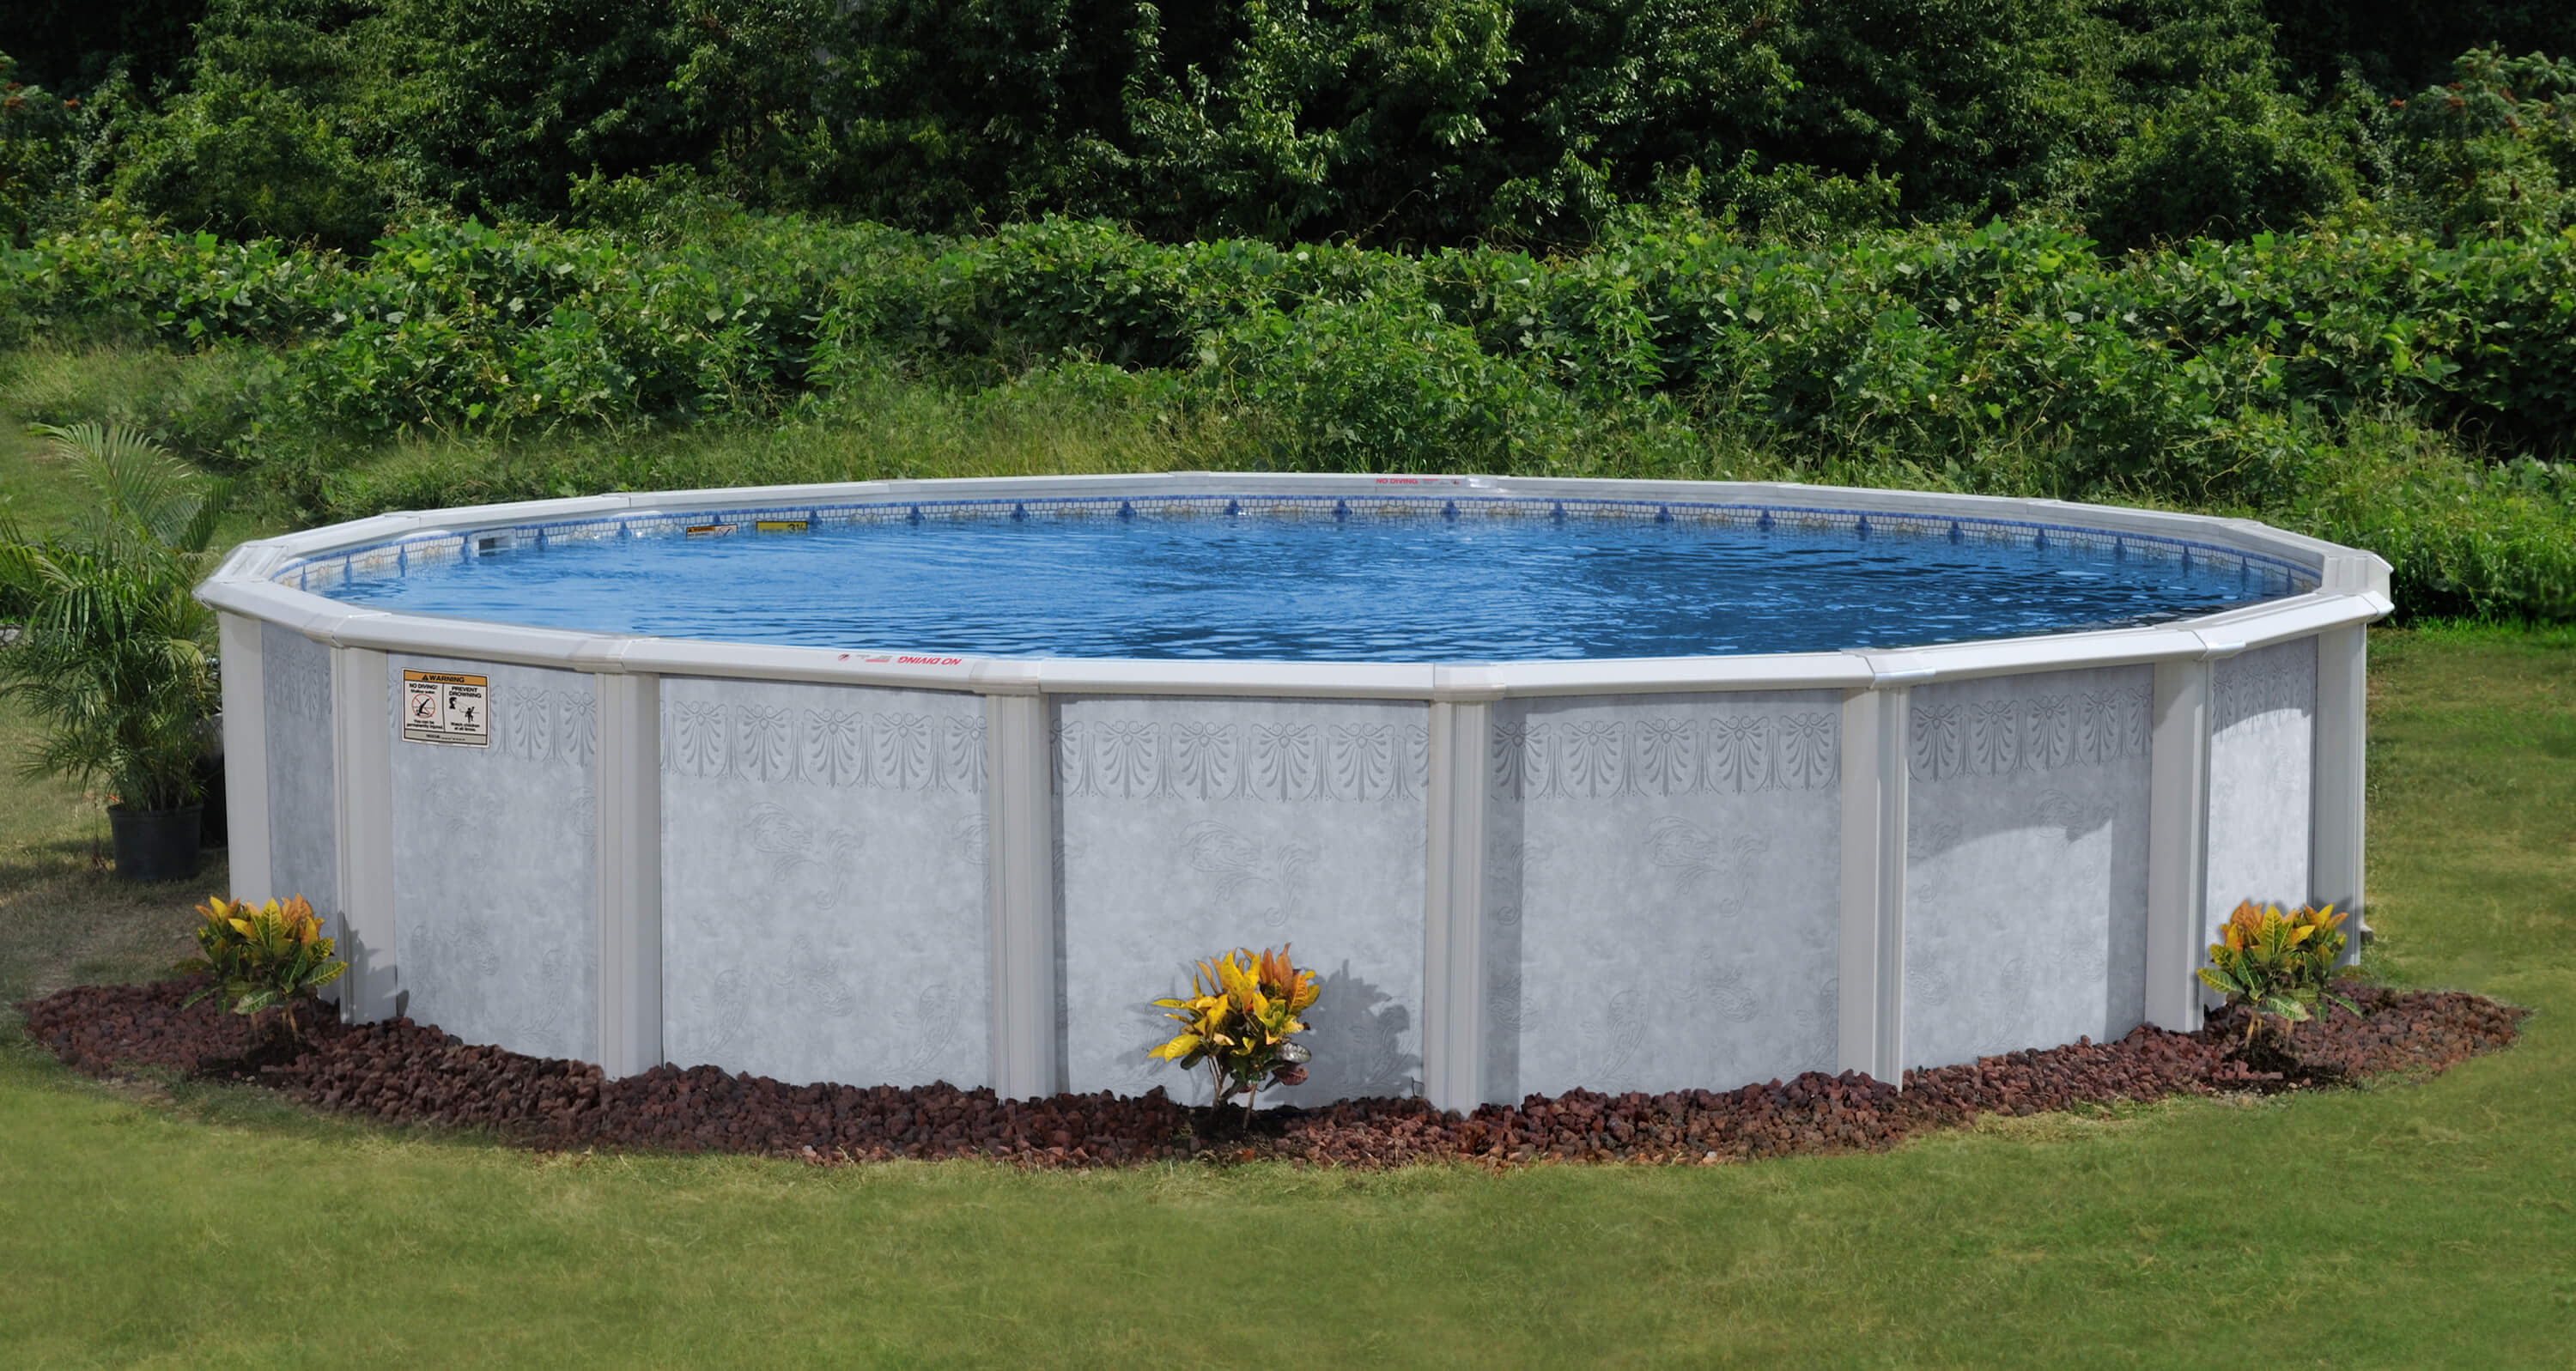 This Is A Staged Photo Of The Palm Shore Above Ground Swimming Pool.